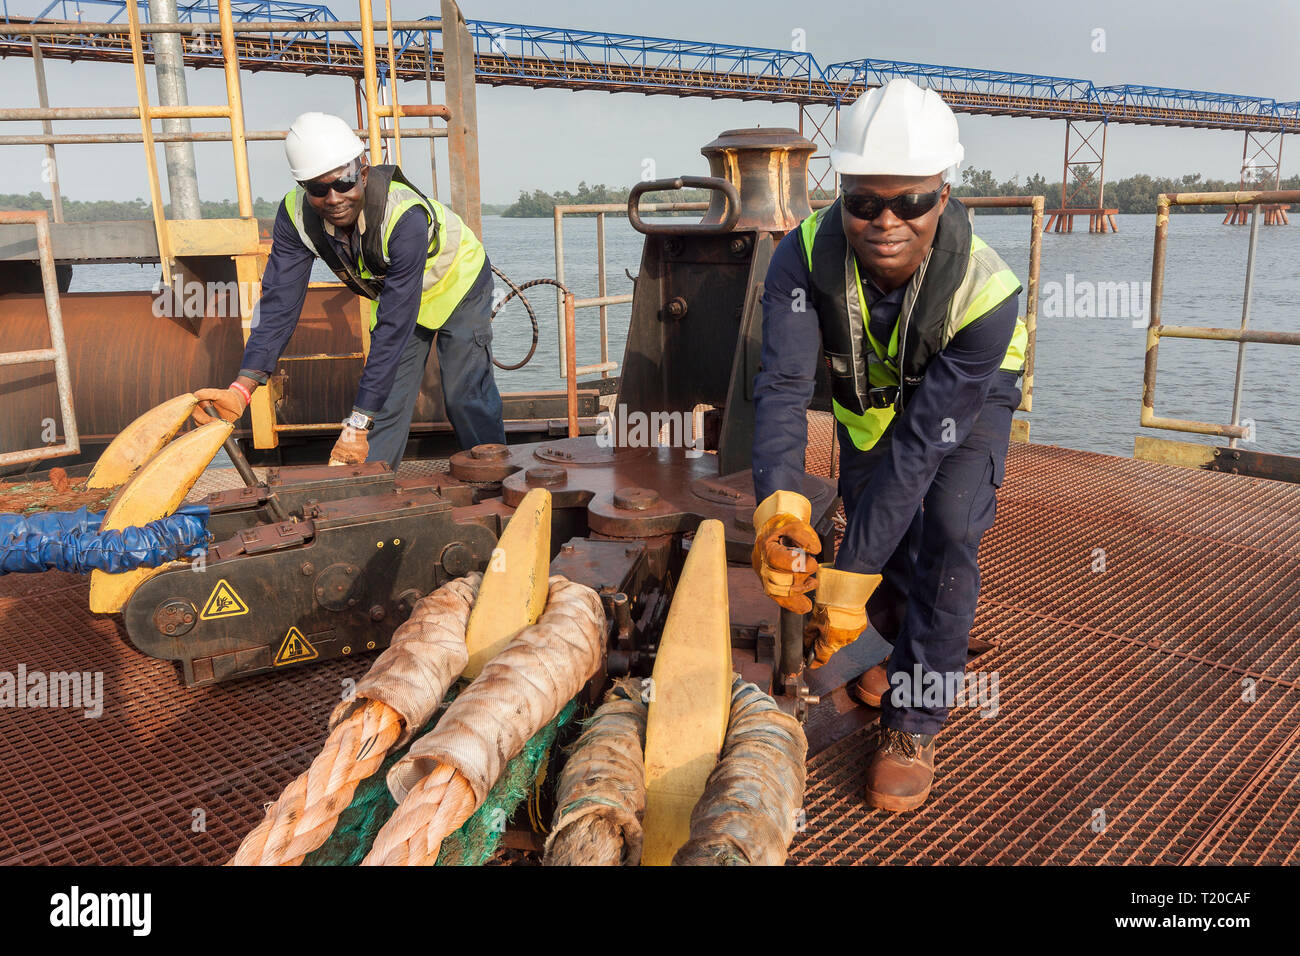 Port operations for managing and transporting iron ore.  Dolphin jetty mooring facility with riggers using quick release rope hooks as ship sets sail - Stock Image